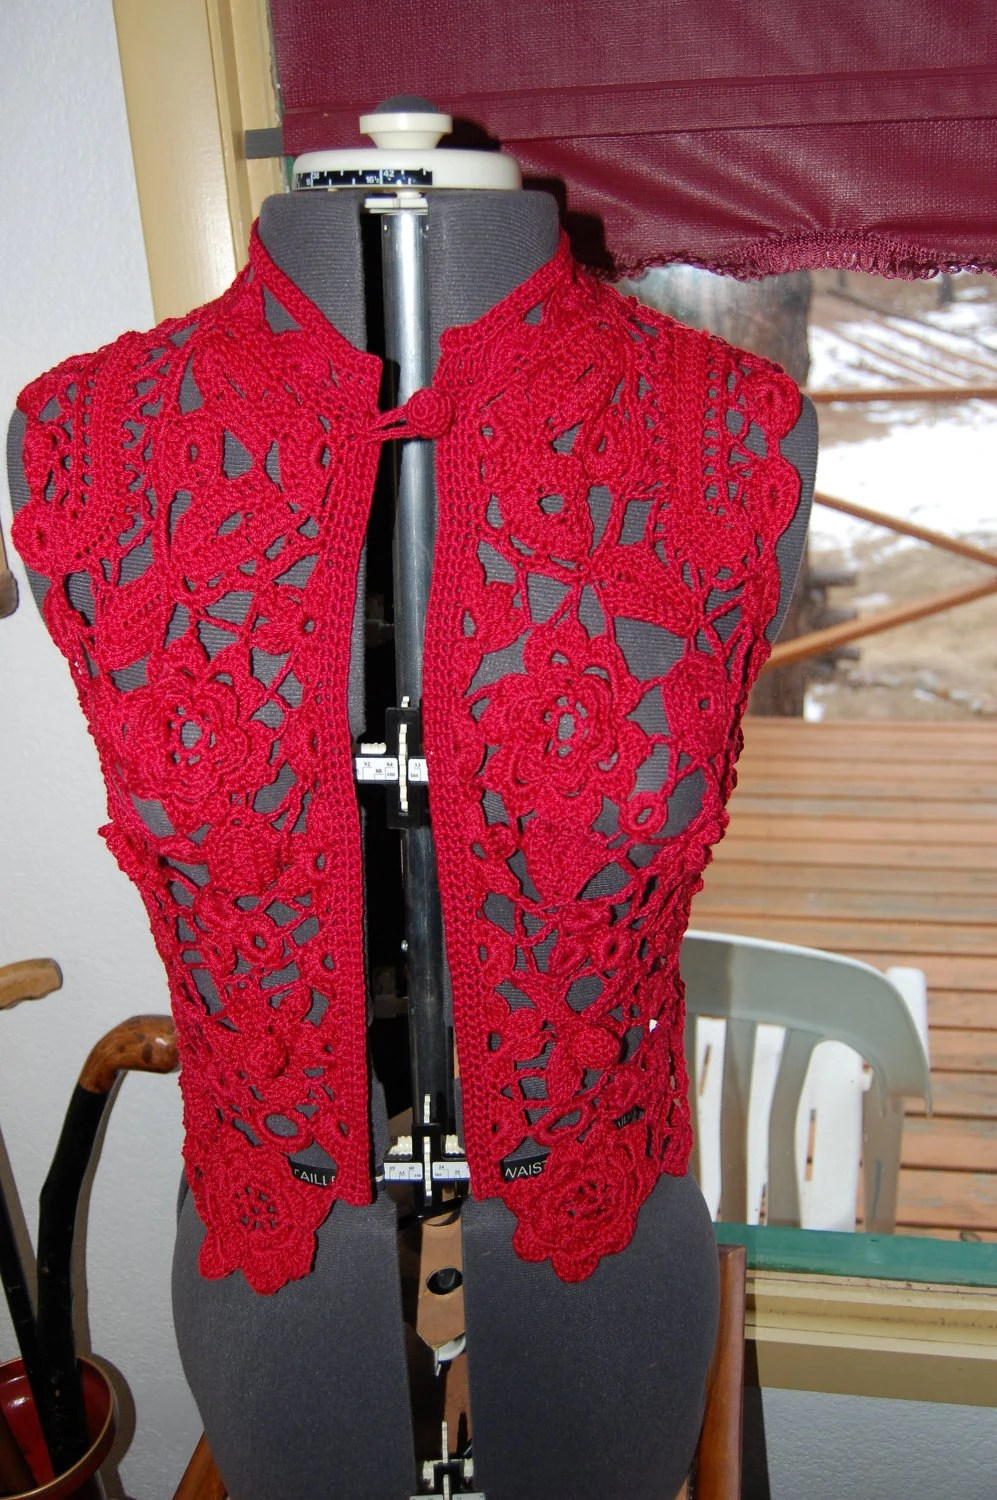 Crochet Irish Lace Vest in Scarlet